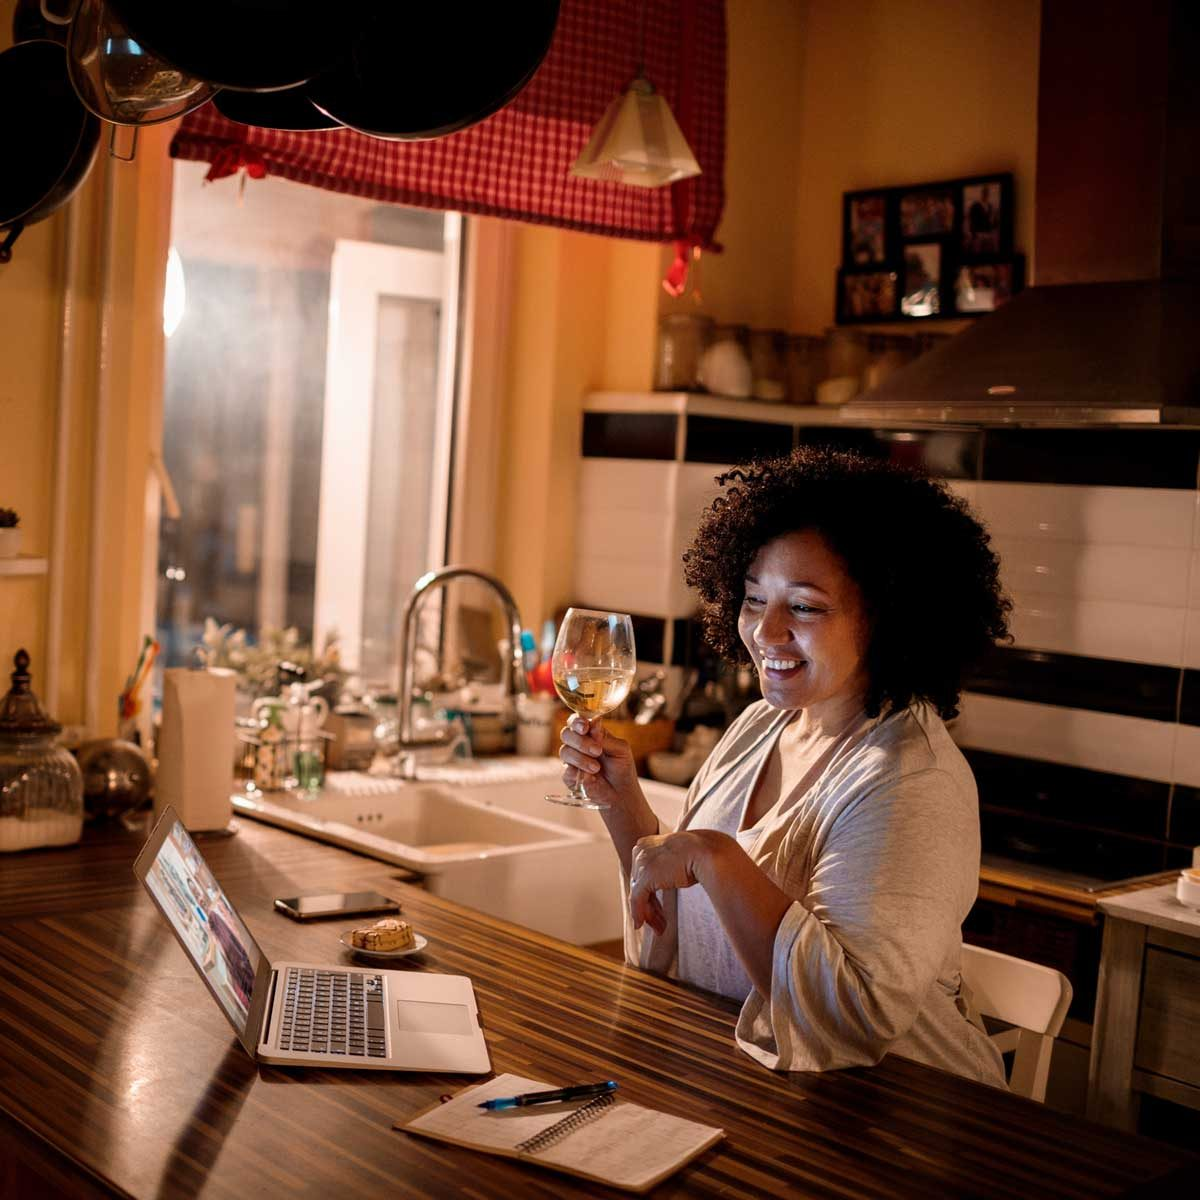 Woman having a glass of wine for virtual Friendsgiving